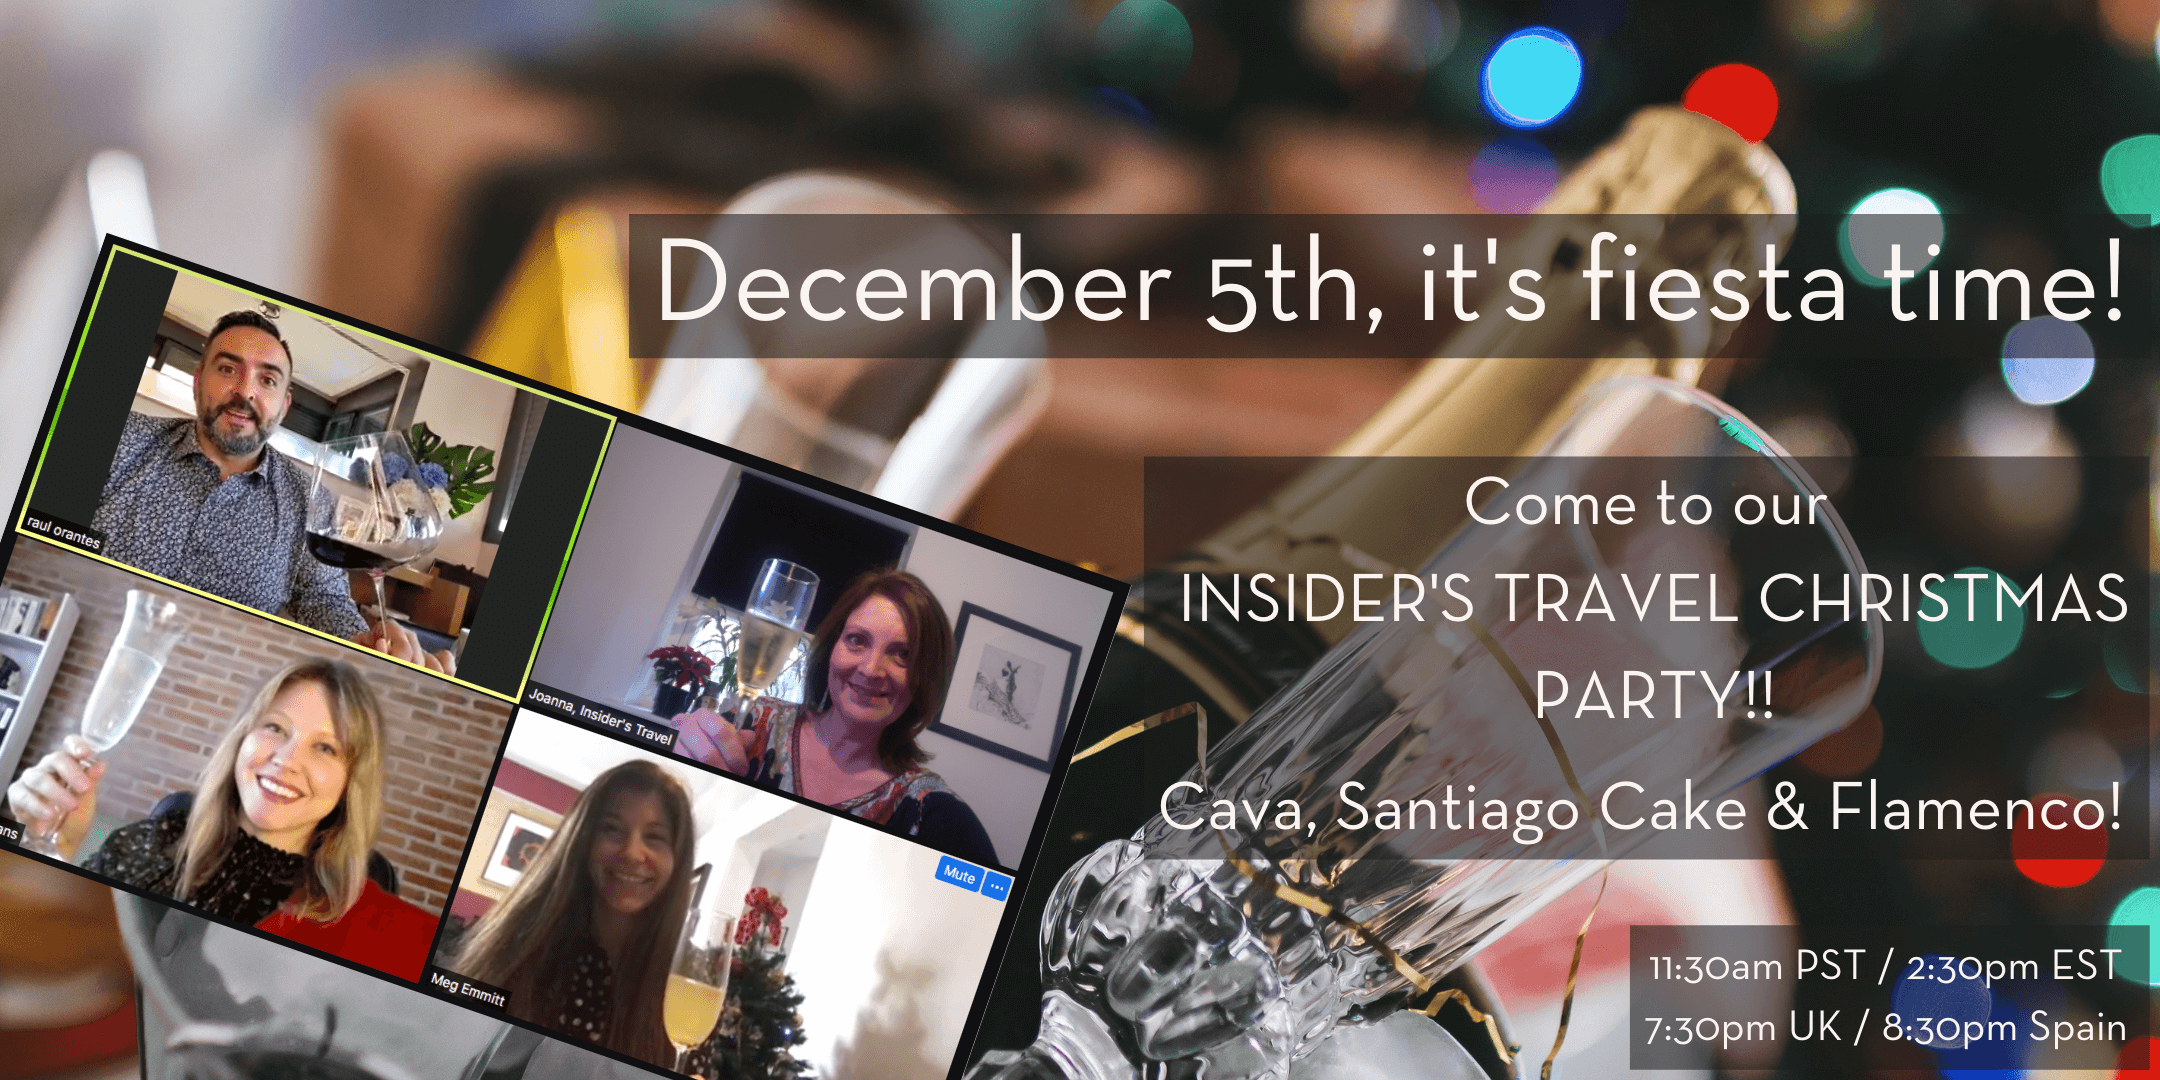 Insider's Travel Christmas Party